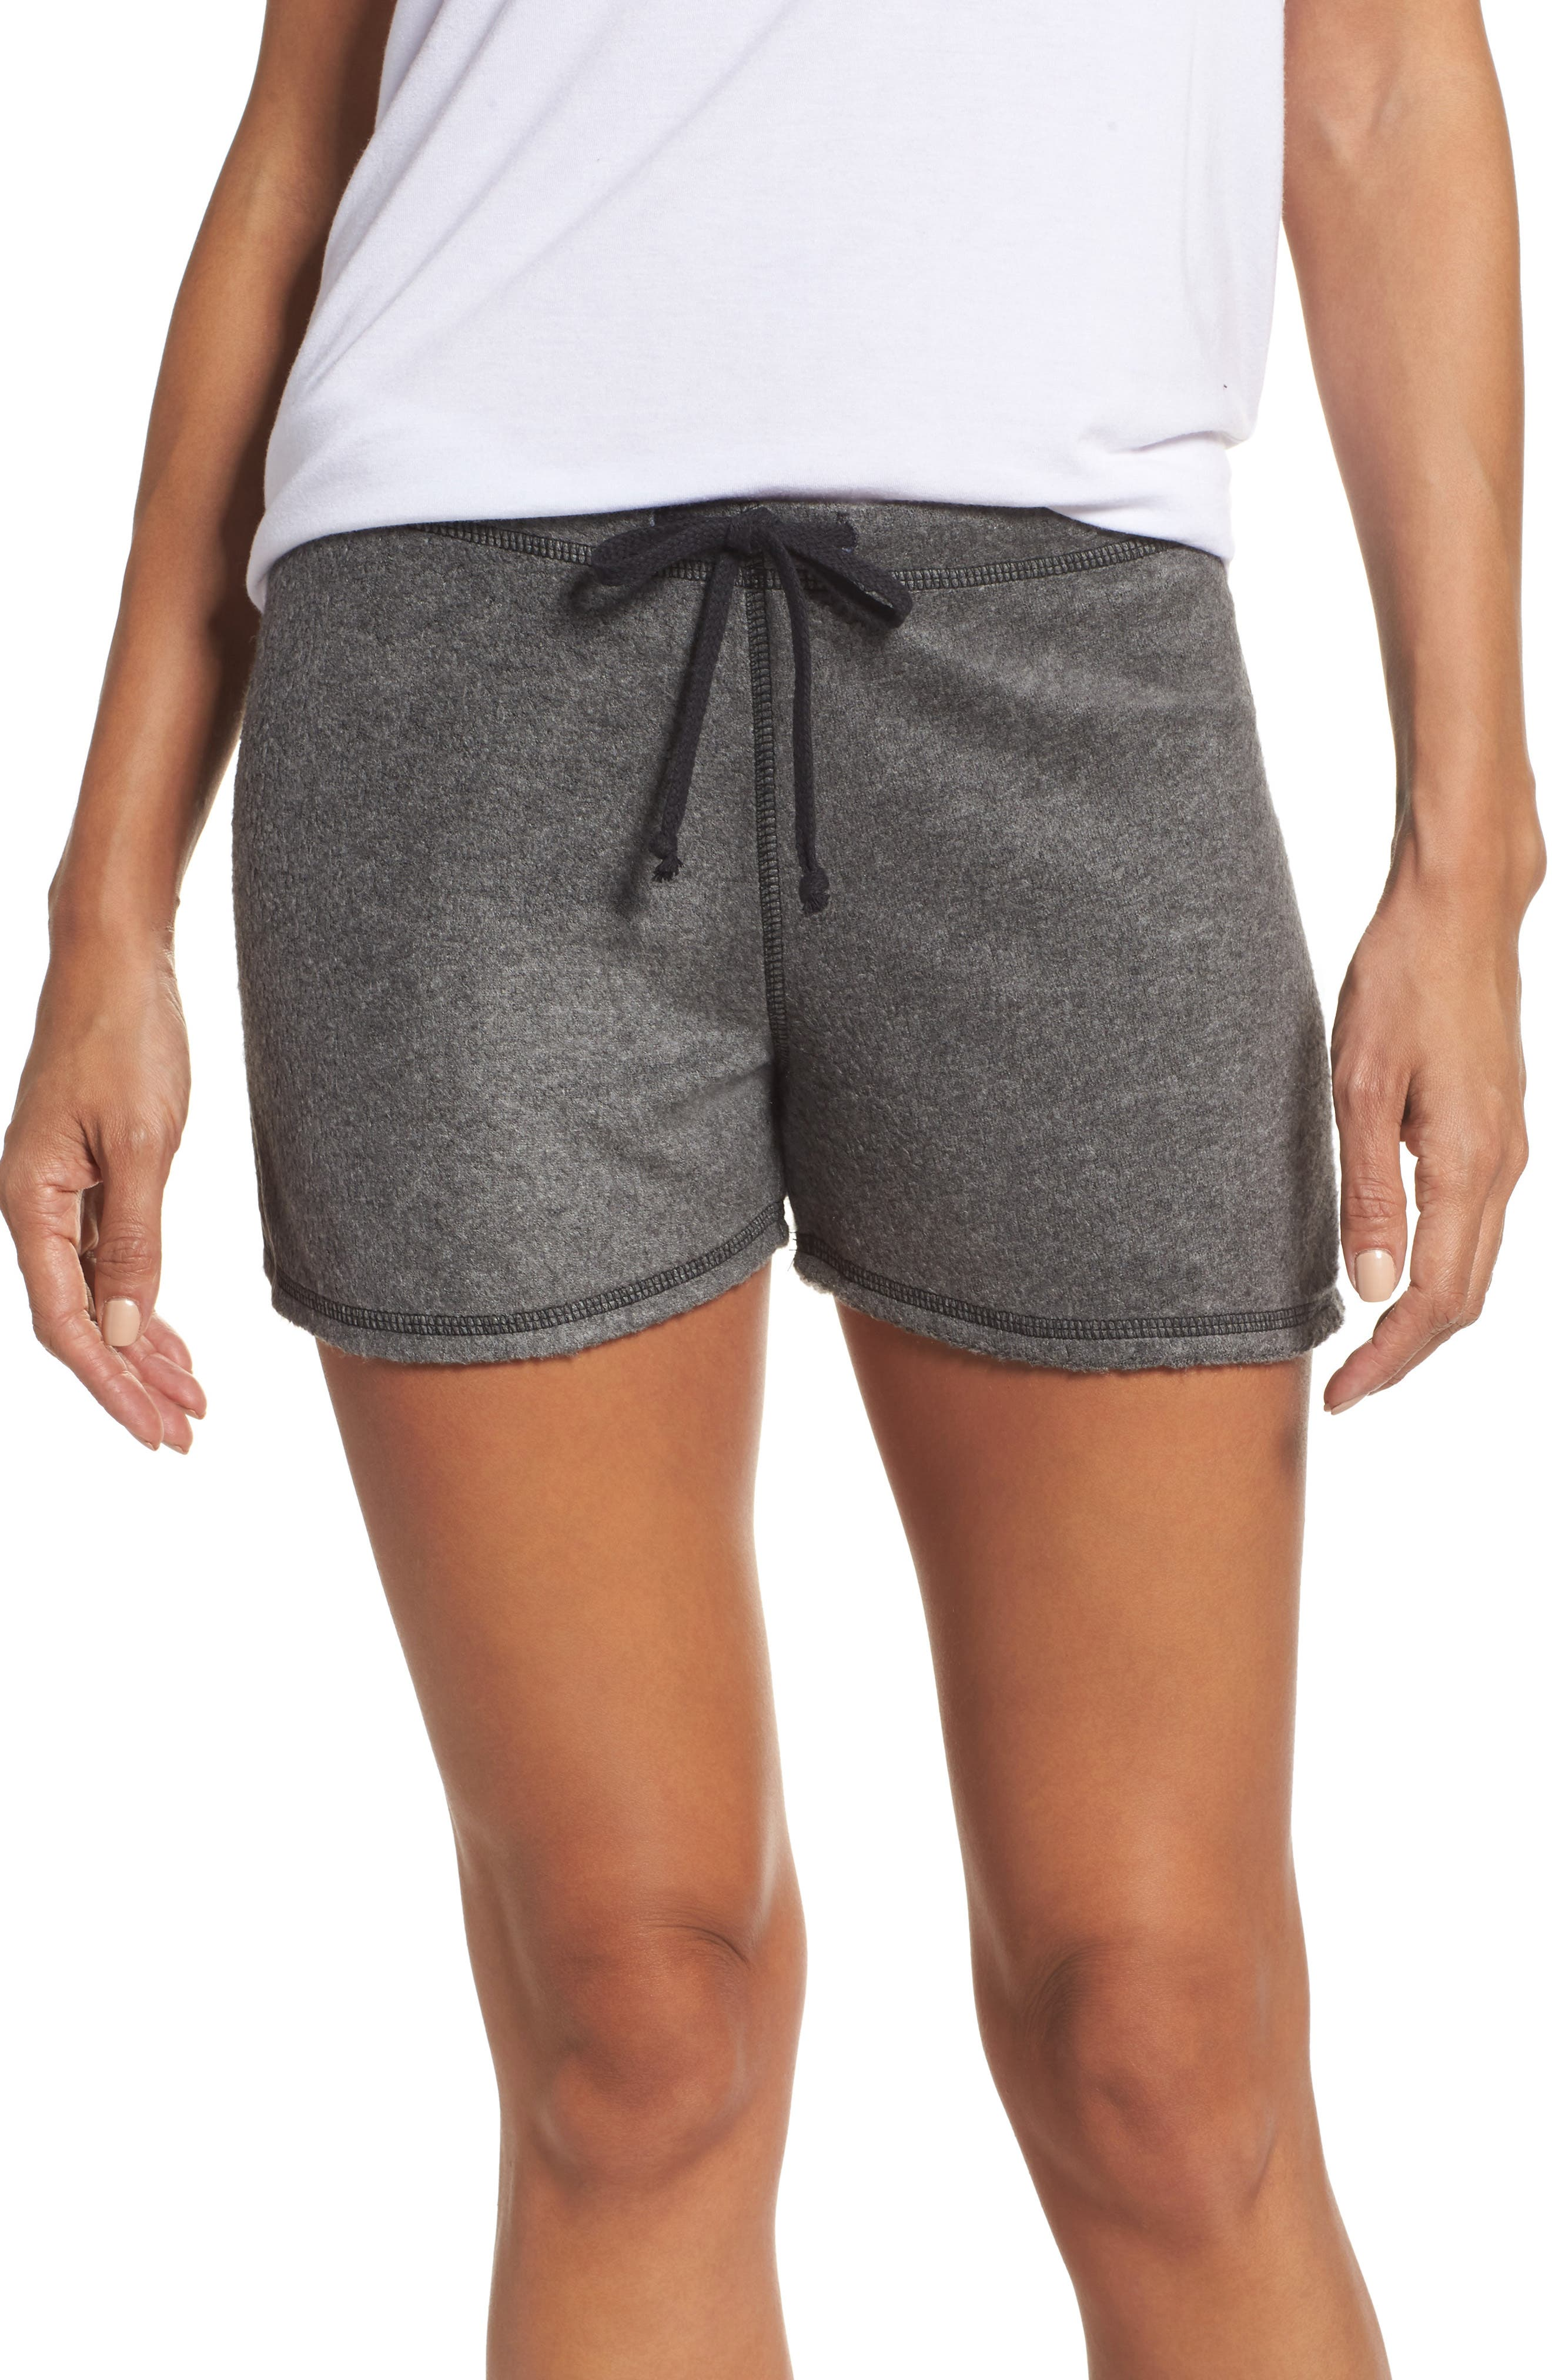 Traci Fleece Lounge Shorts,                         Main,                         color, 020